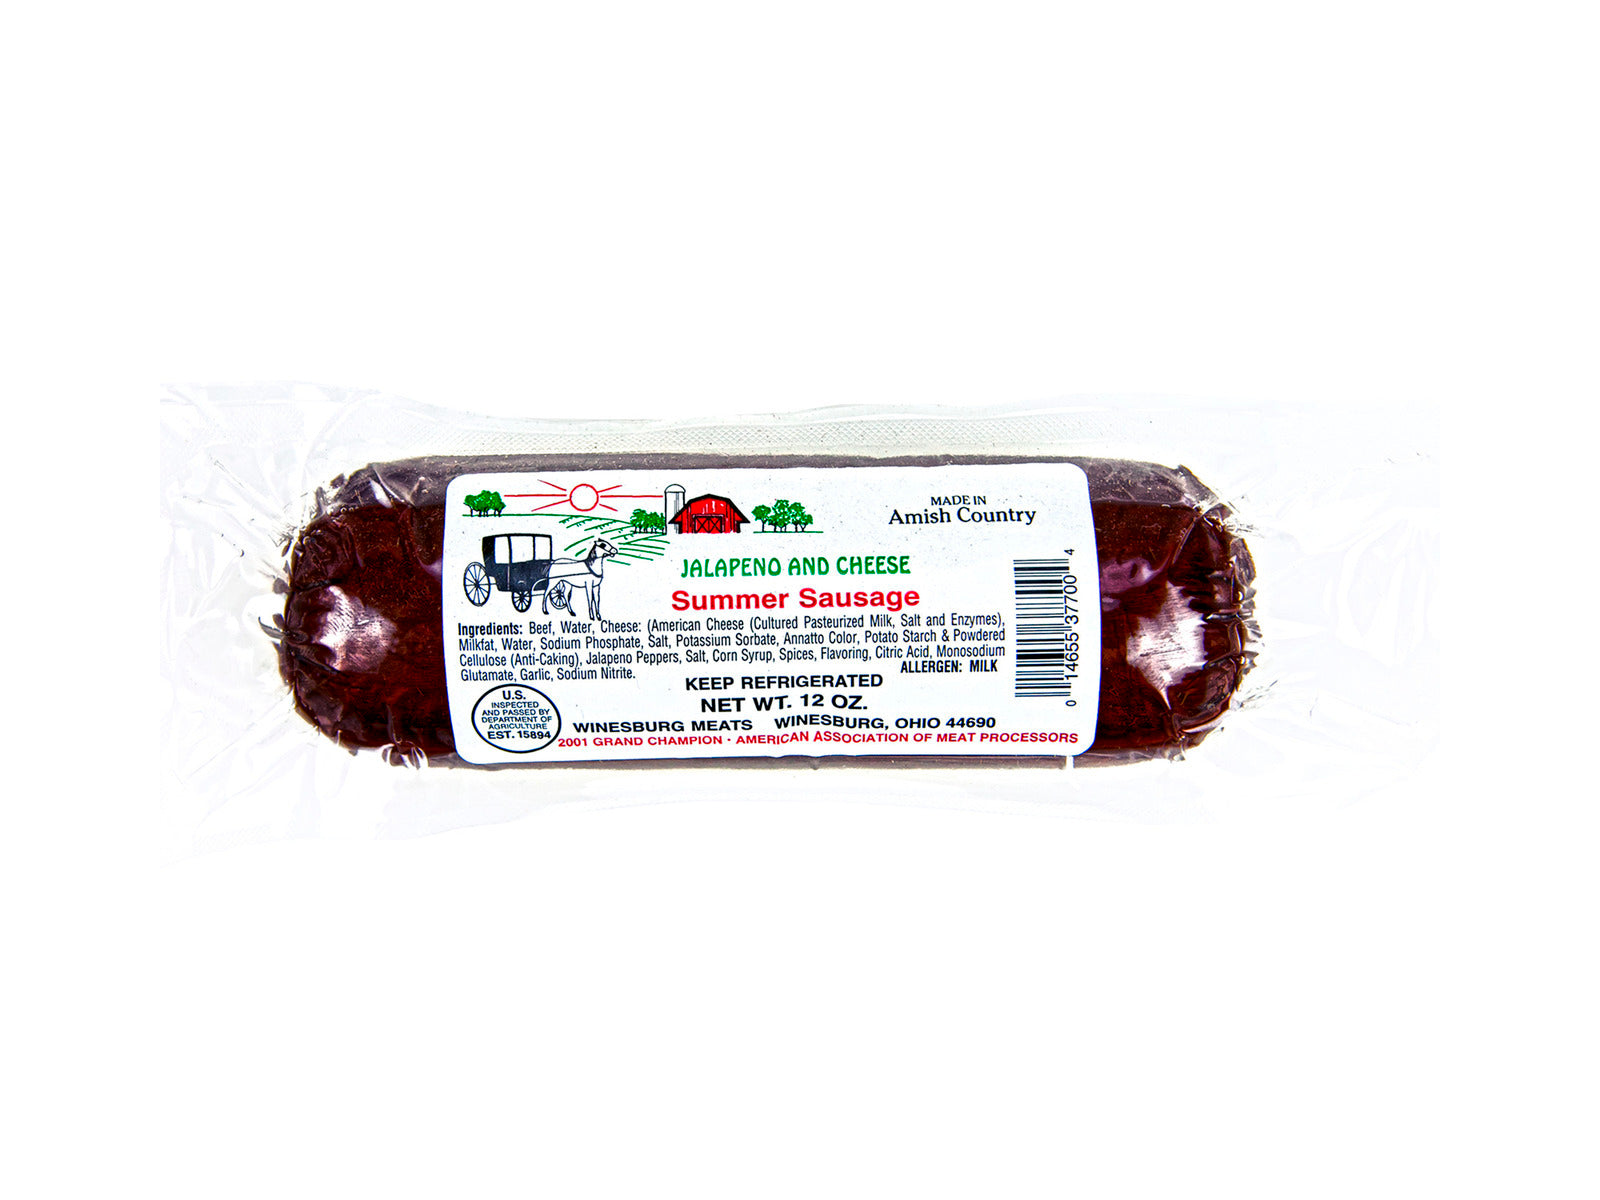 Meats - Summer Sausage - Jalapeno Cheese